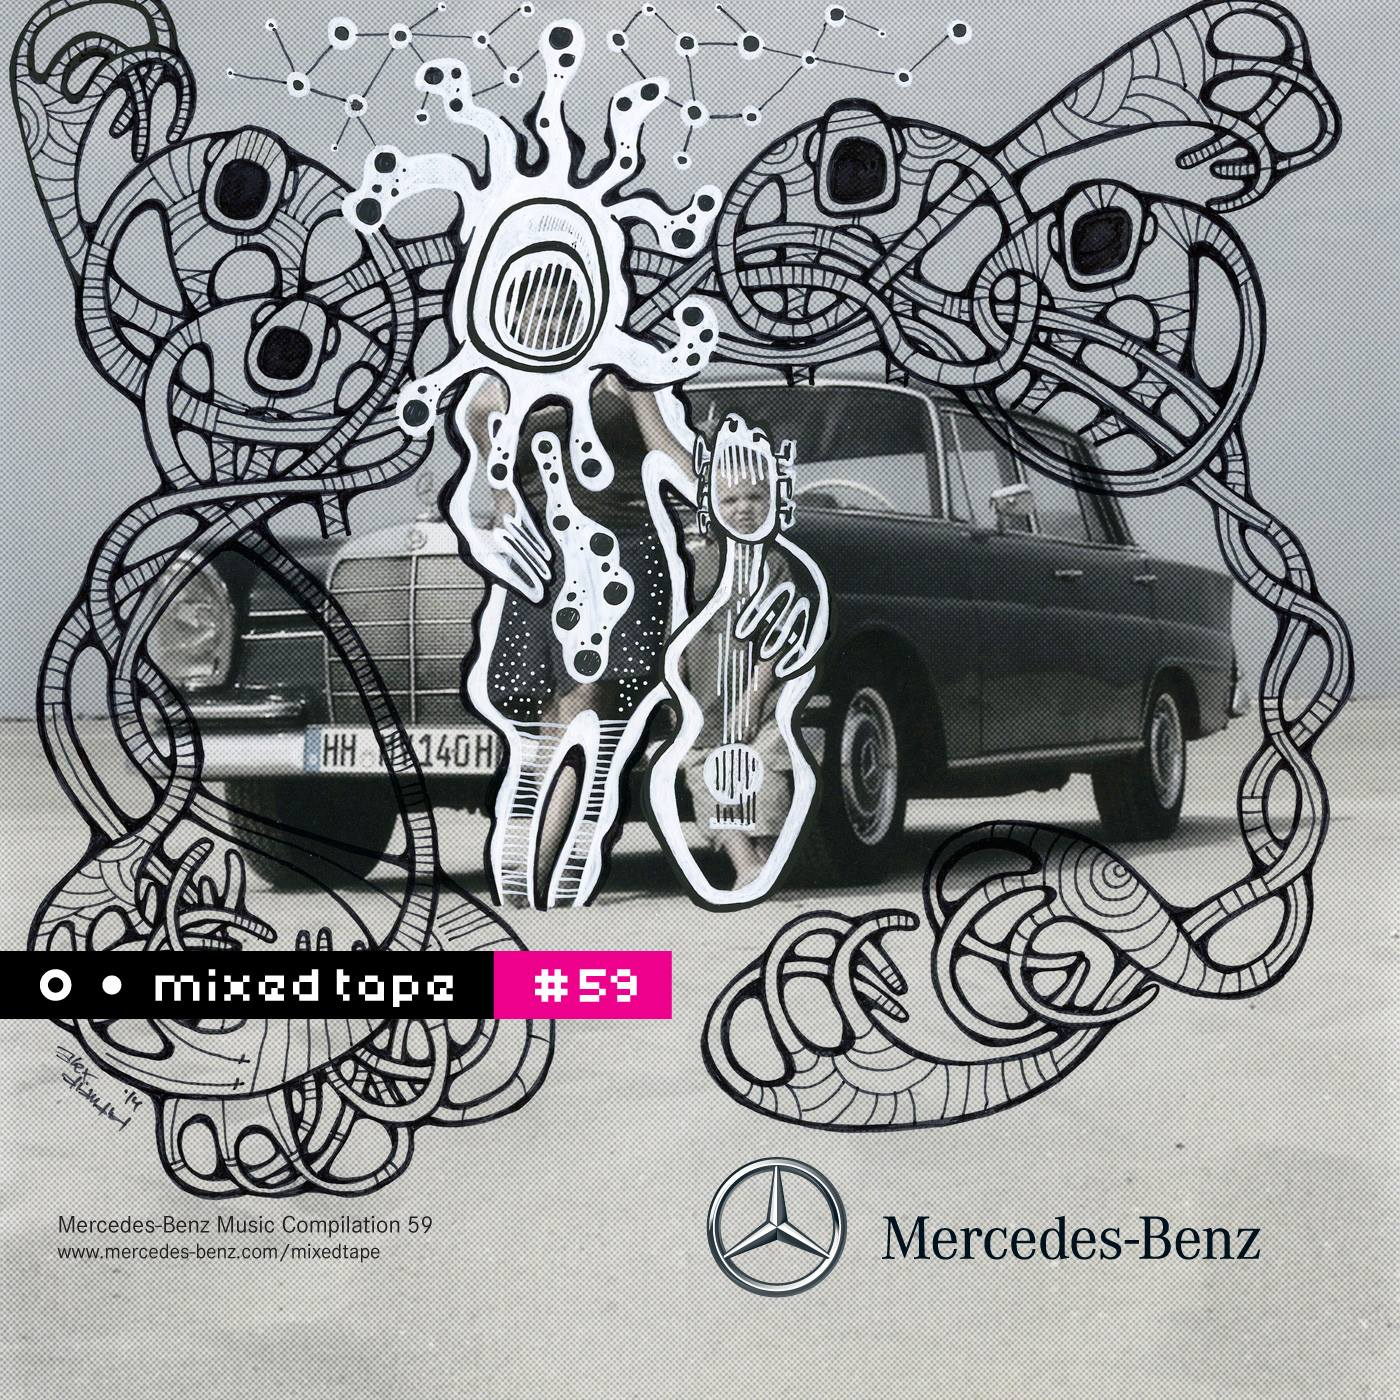 My cover artwork for the Mercedes Mixed Tape #59, released November 7, 2014. © Artwork & Photography by Alex Diamond